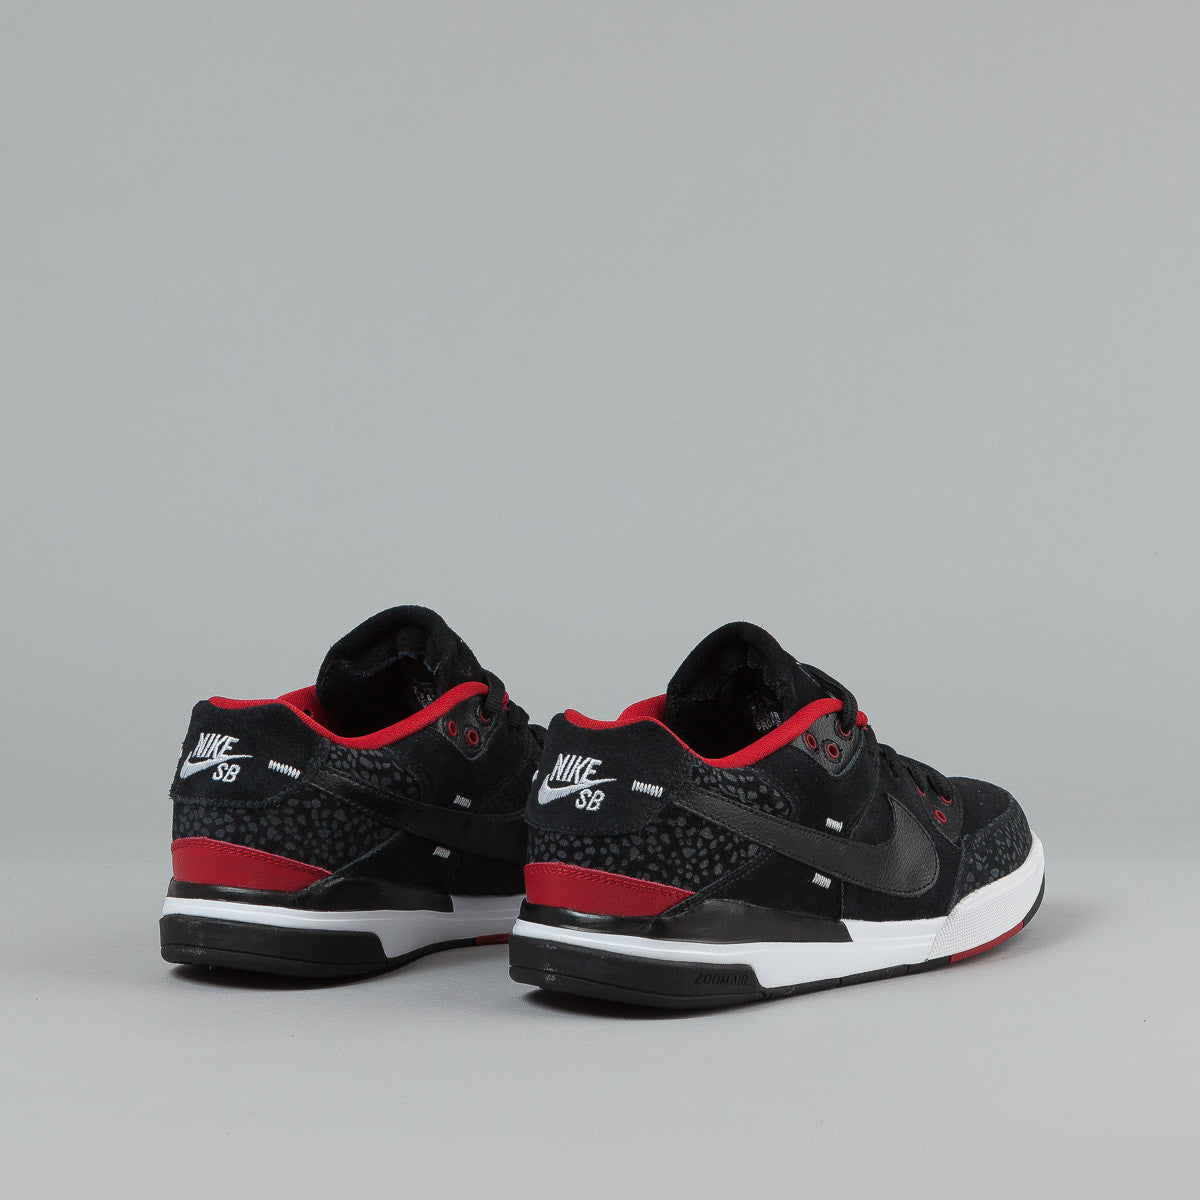 Nike SB Paul Rodriguez 3 Shoes - Black / Black